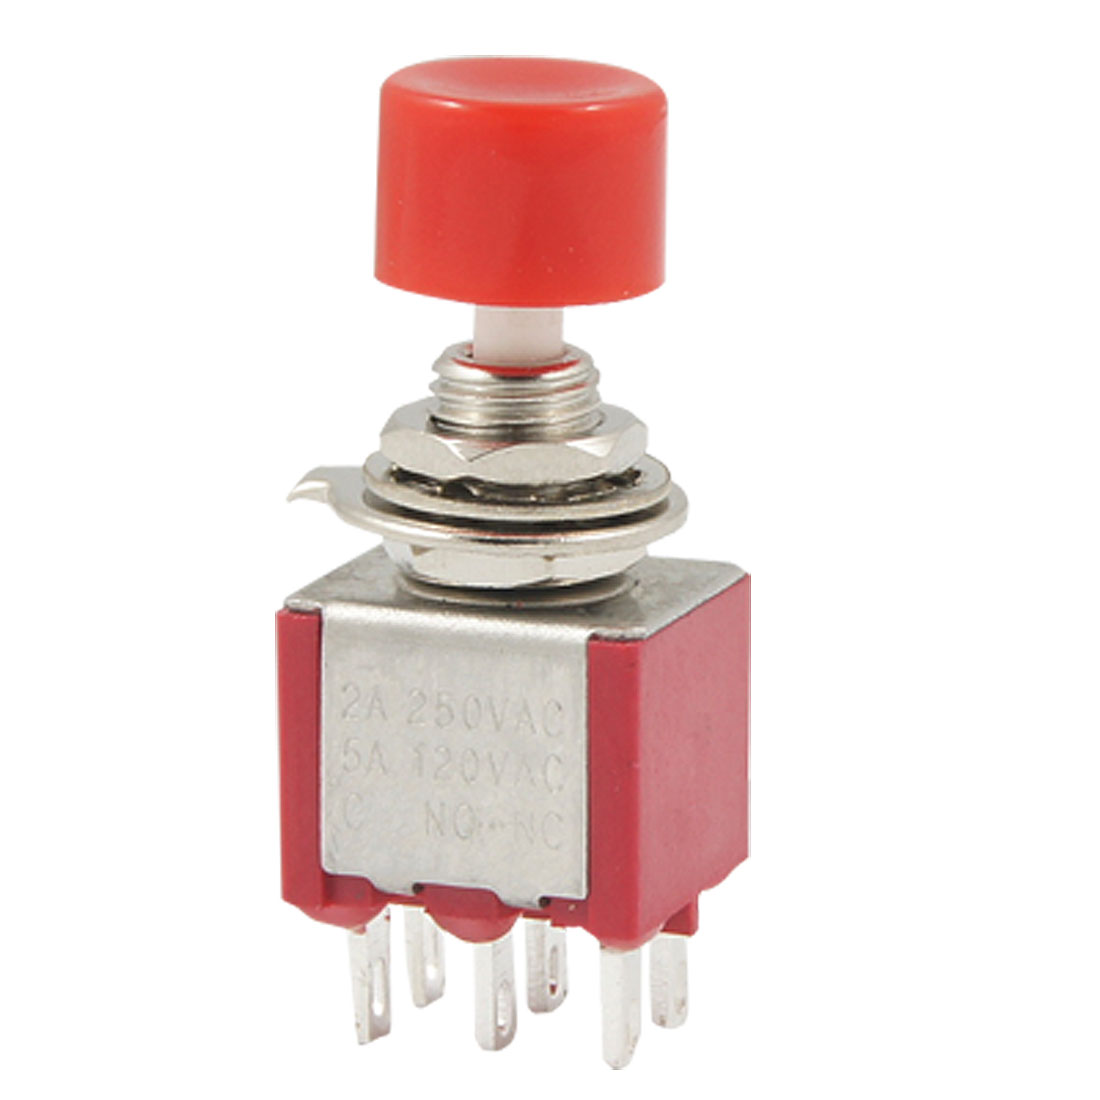 AC 2A/250V 5A/120V 6 Pin DPDT Momentary Push Button Pushbutton Switch 2 NO 2 NC